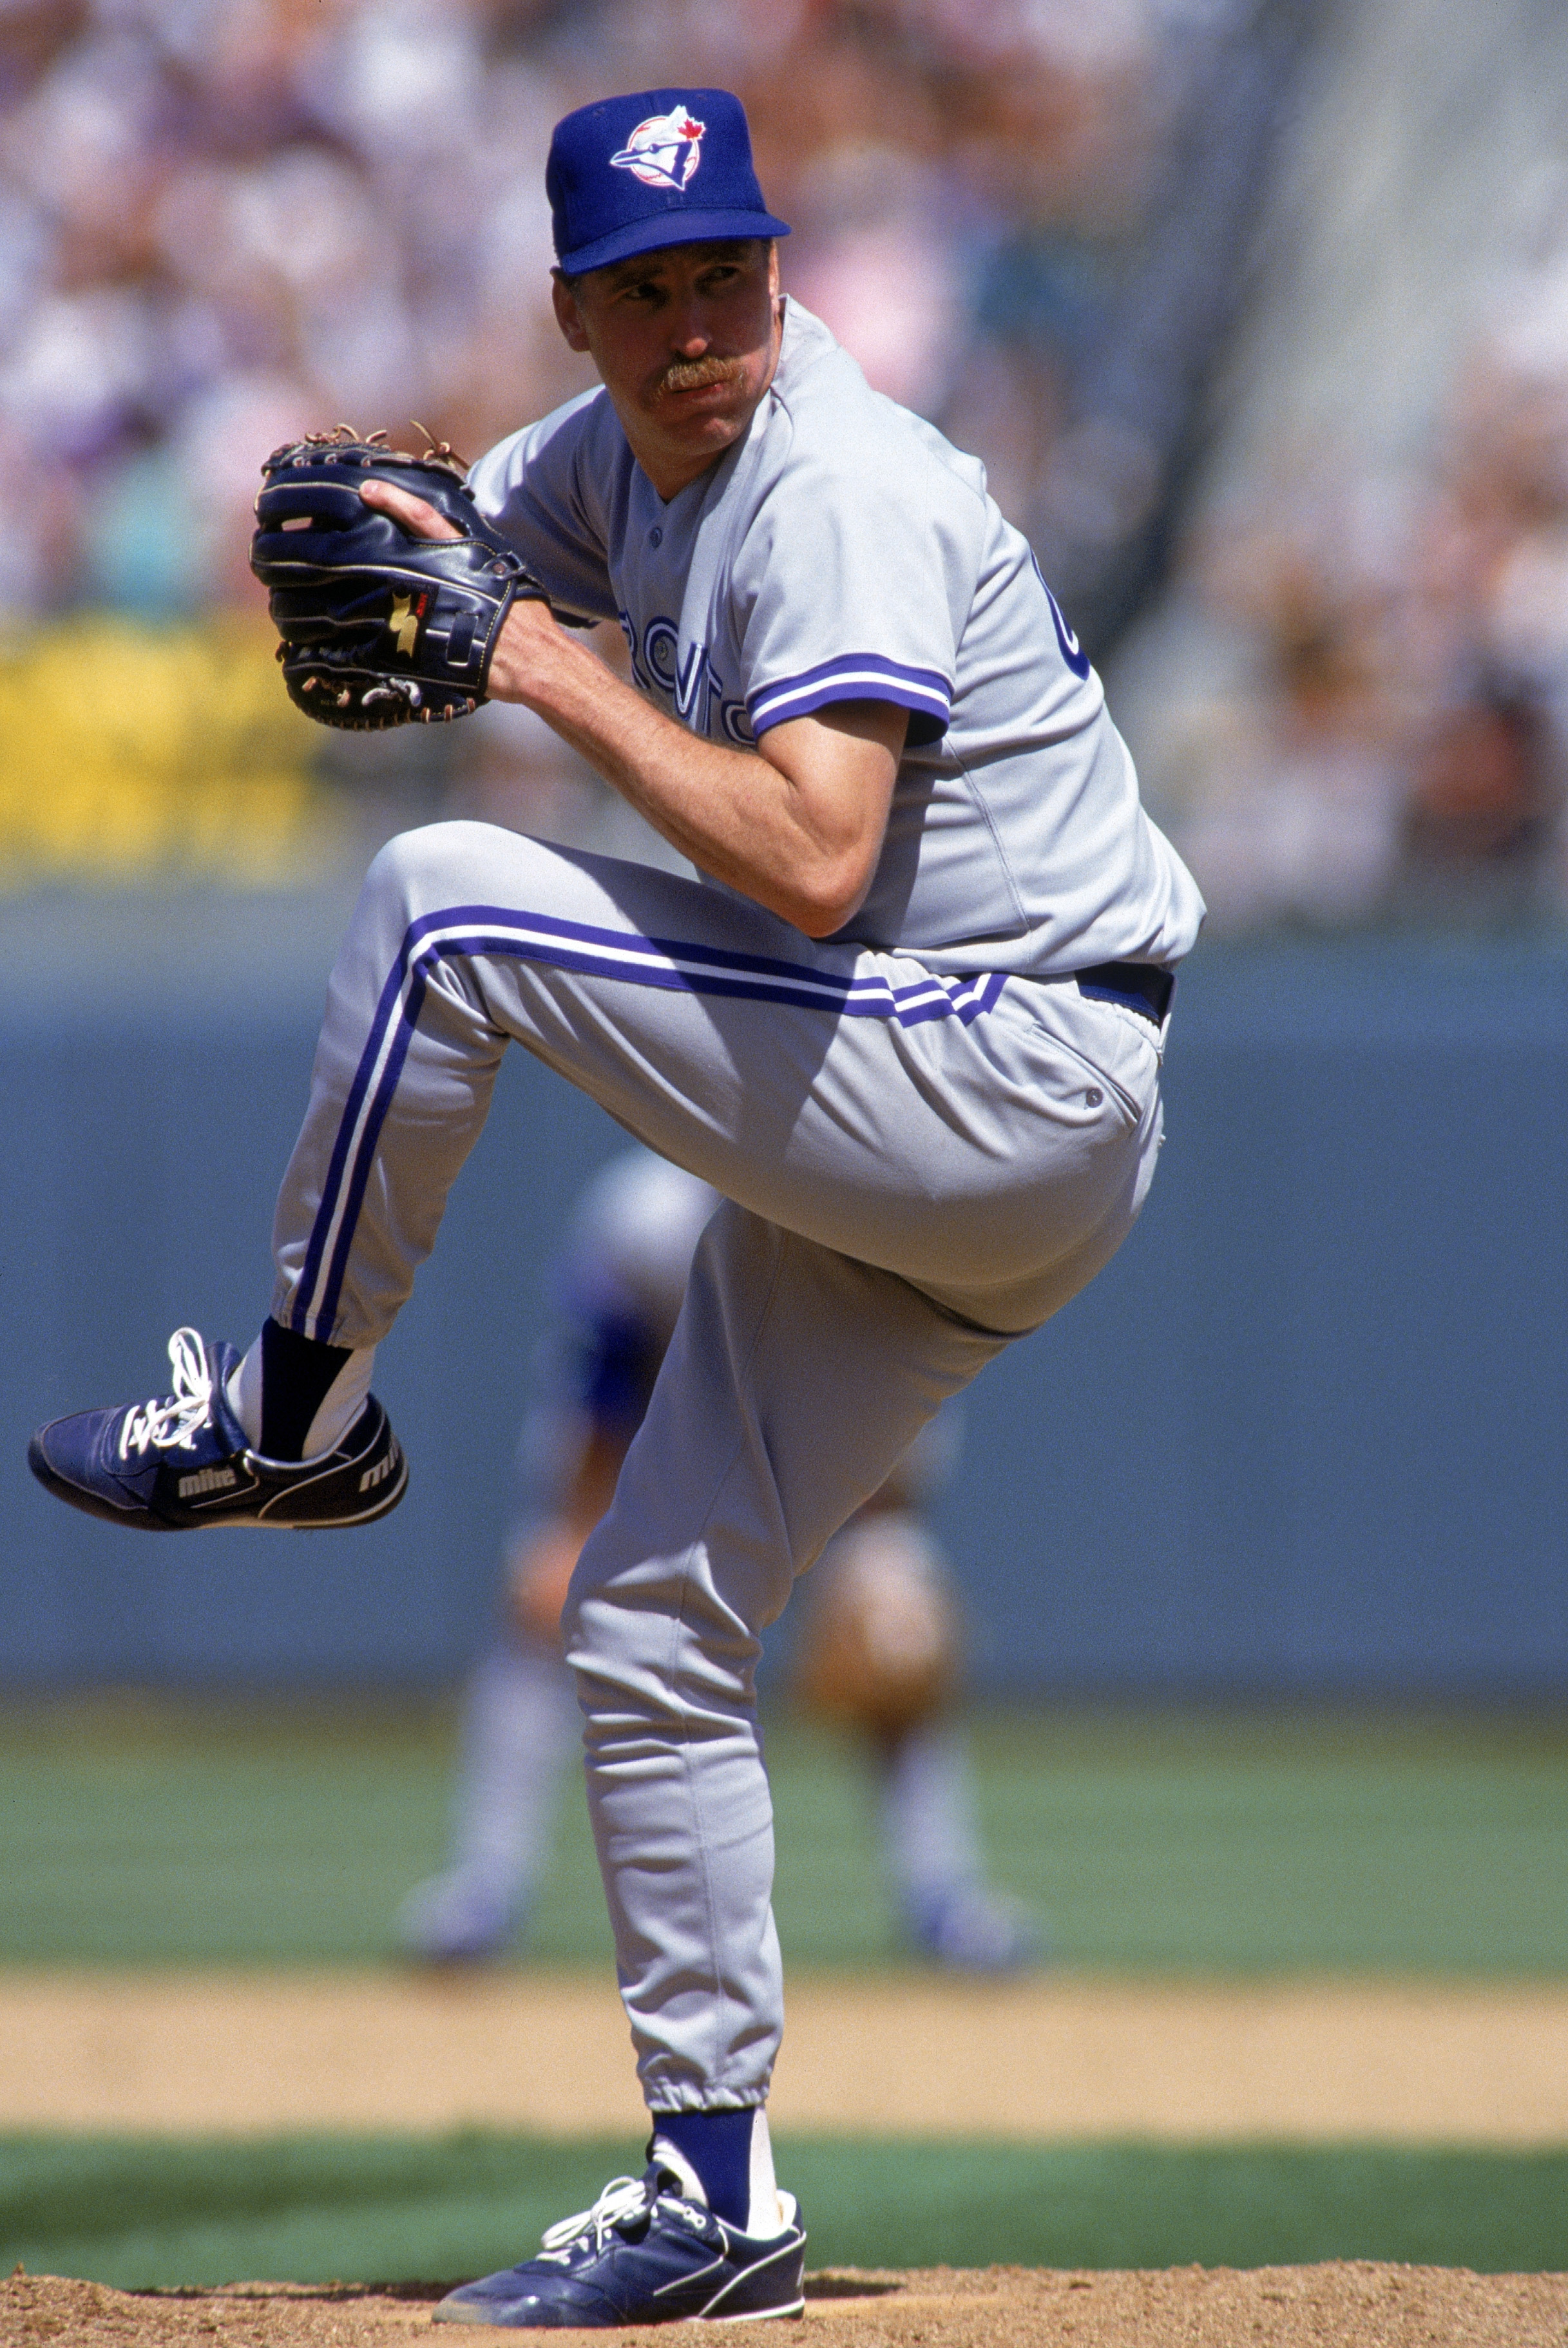 OAKLAND, CA - JULY 26:  Pitcher Jack Morris #47 of the Toronto Blue Jays on the mound during a game against the Oakland A's on July 26, 1992 at Oakland Alameda County Stadium in Oakland, California.  (Photo by Otto Greule Jr./Getty Images)